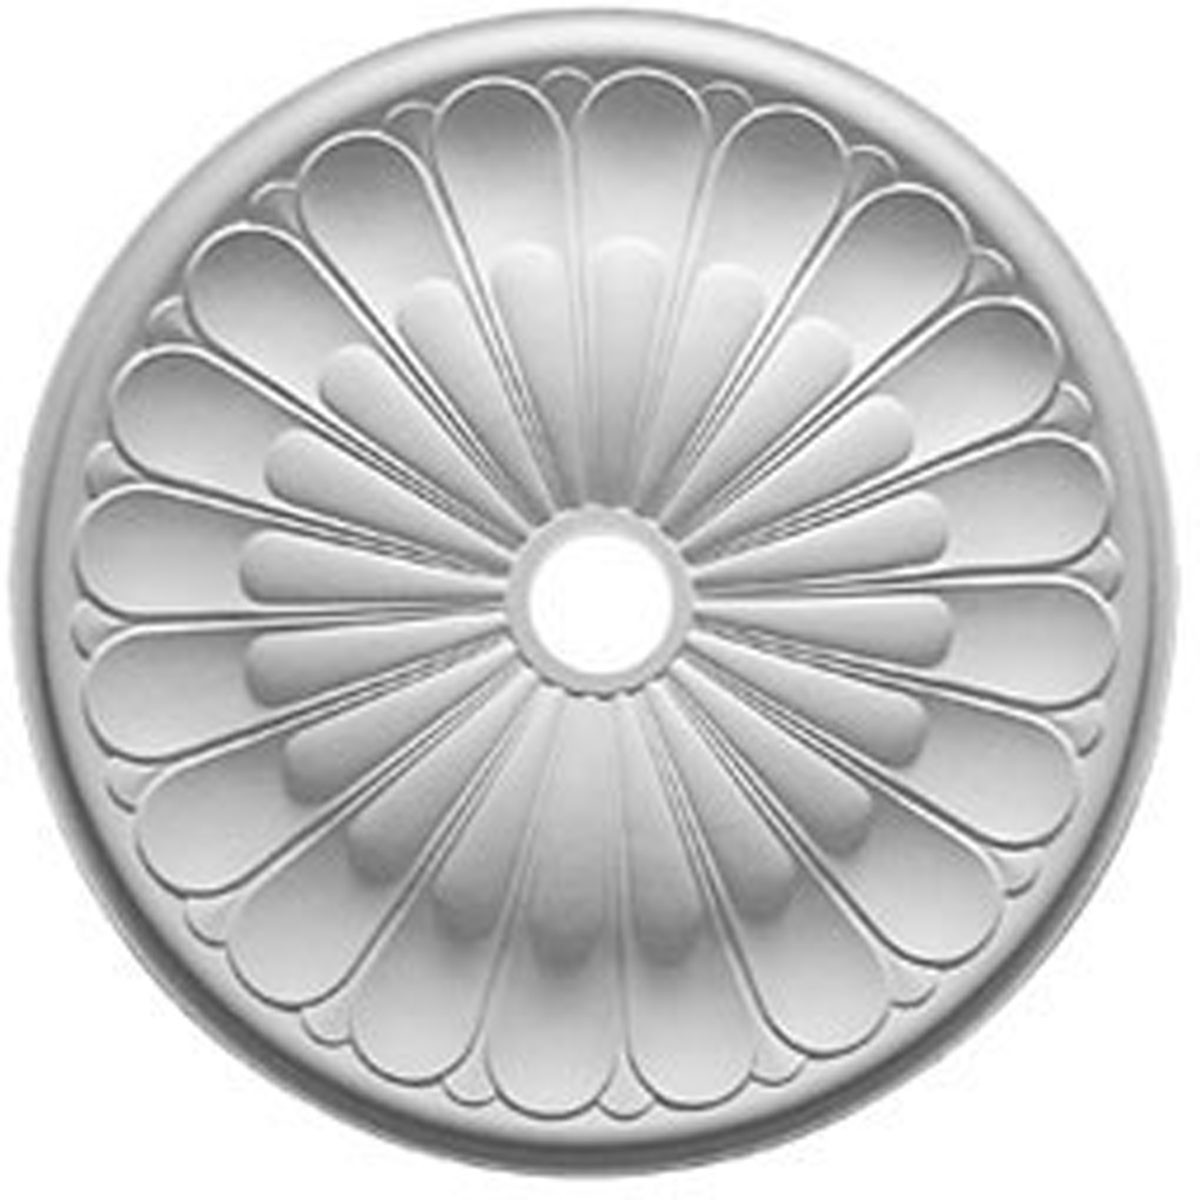 """EM-CM31GO - 31 5/8""""OD x 3 5/8""""ID x 1 7/8""""P Gorleen Ceiling Medallion (Fits Canopies up to 3 5/8"""")"""